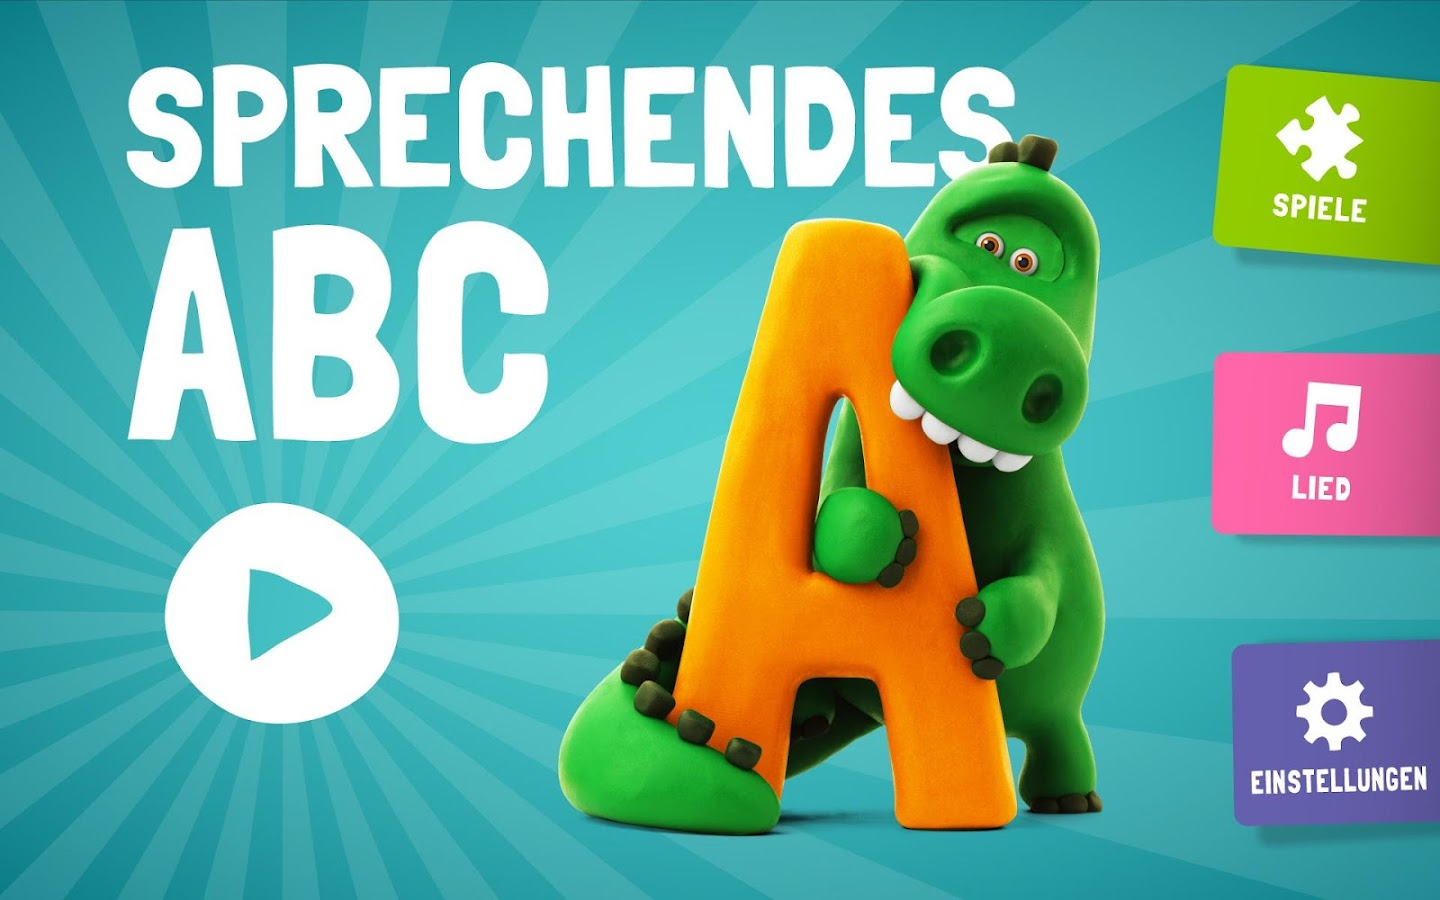 Sprechendes ABC- screenshot